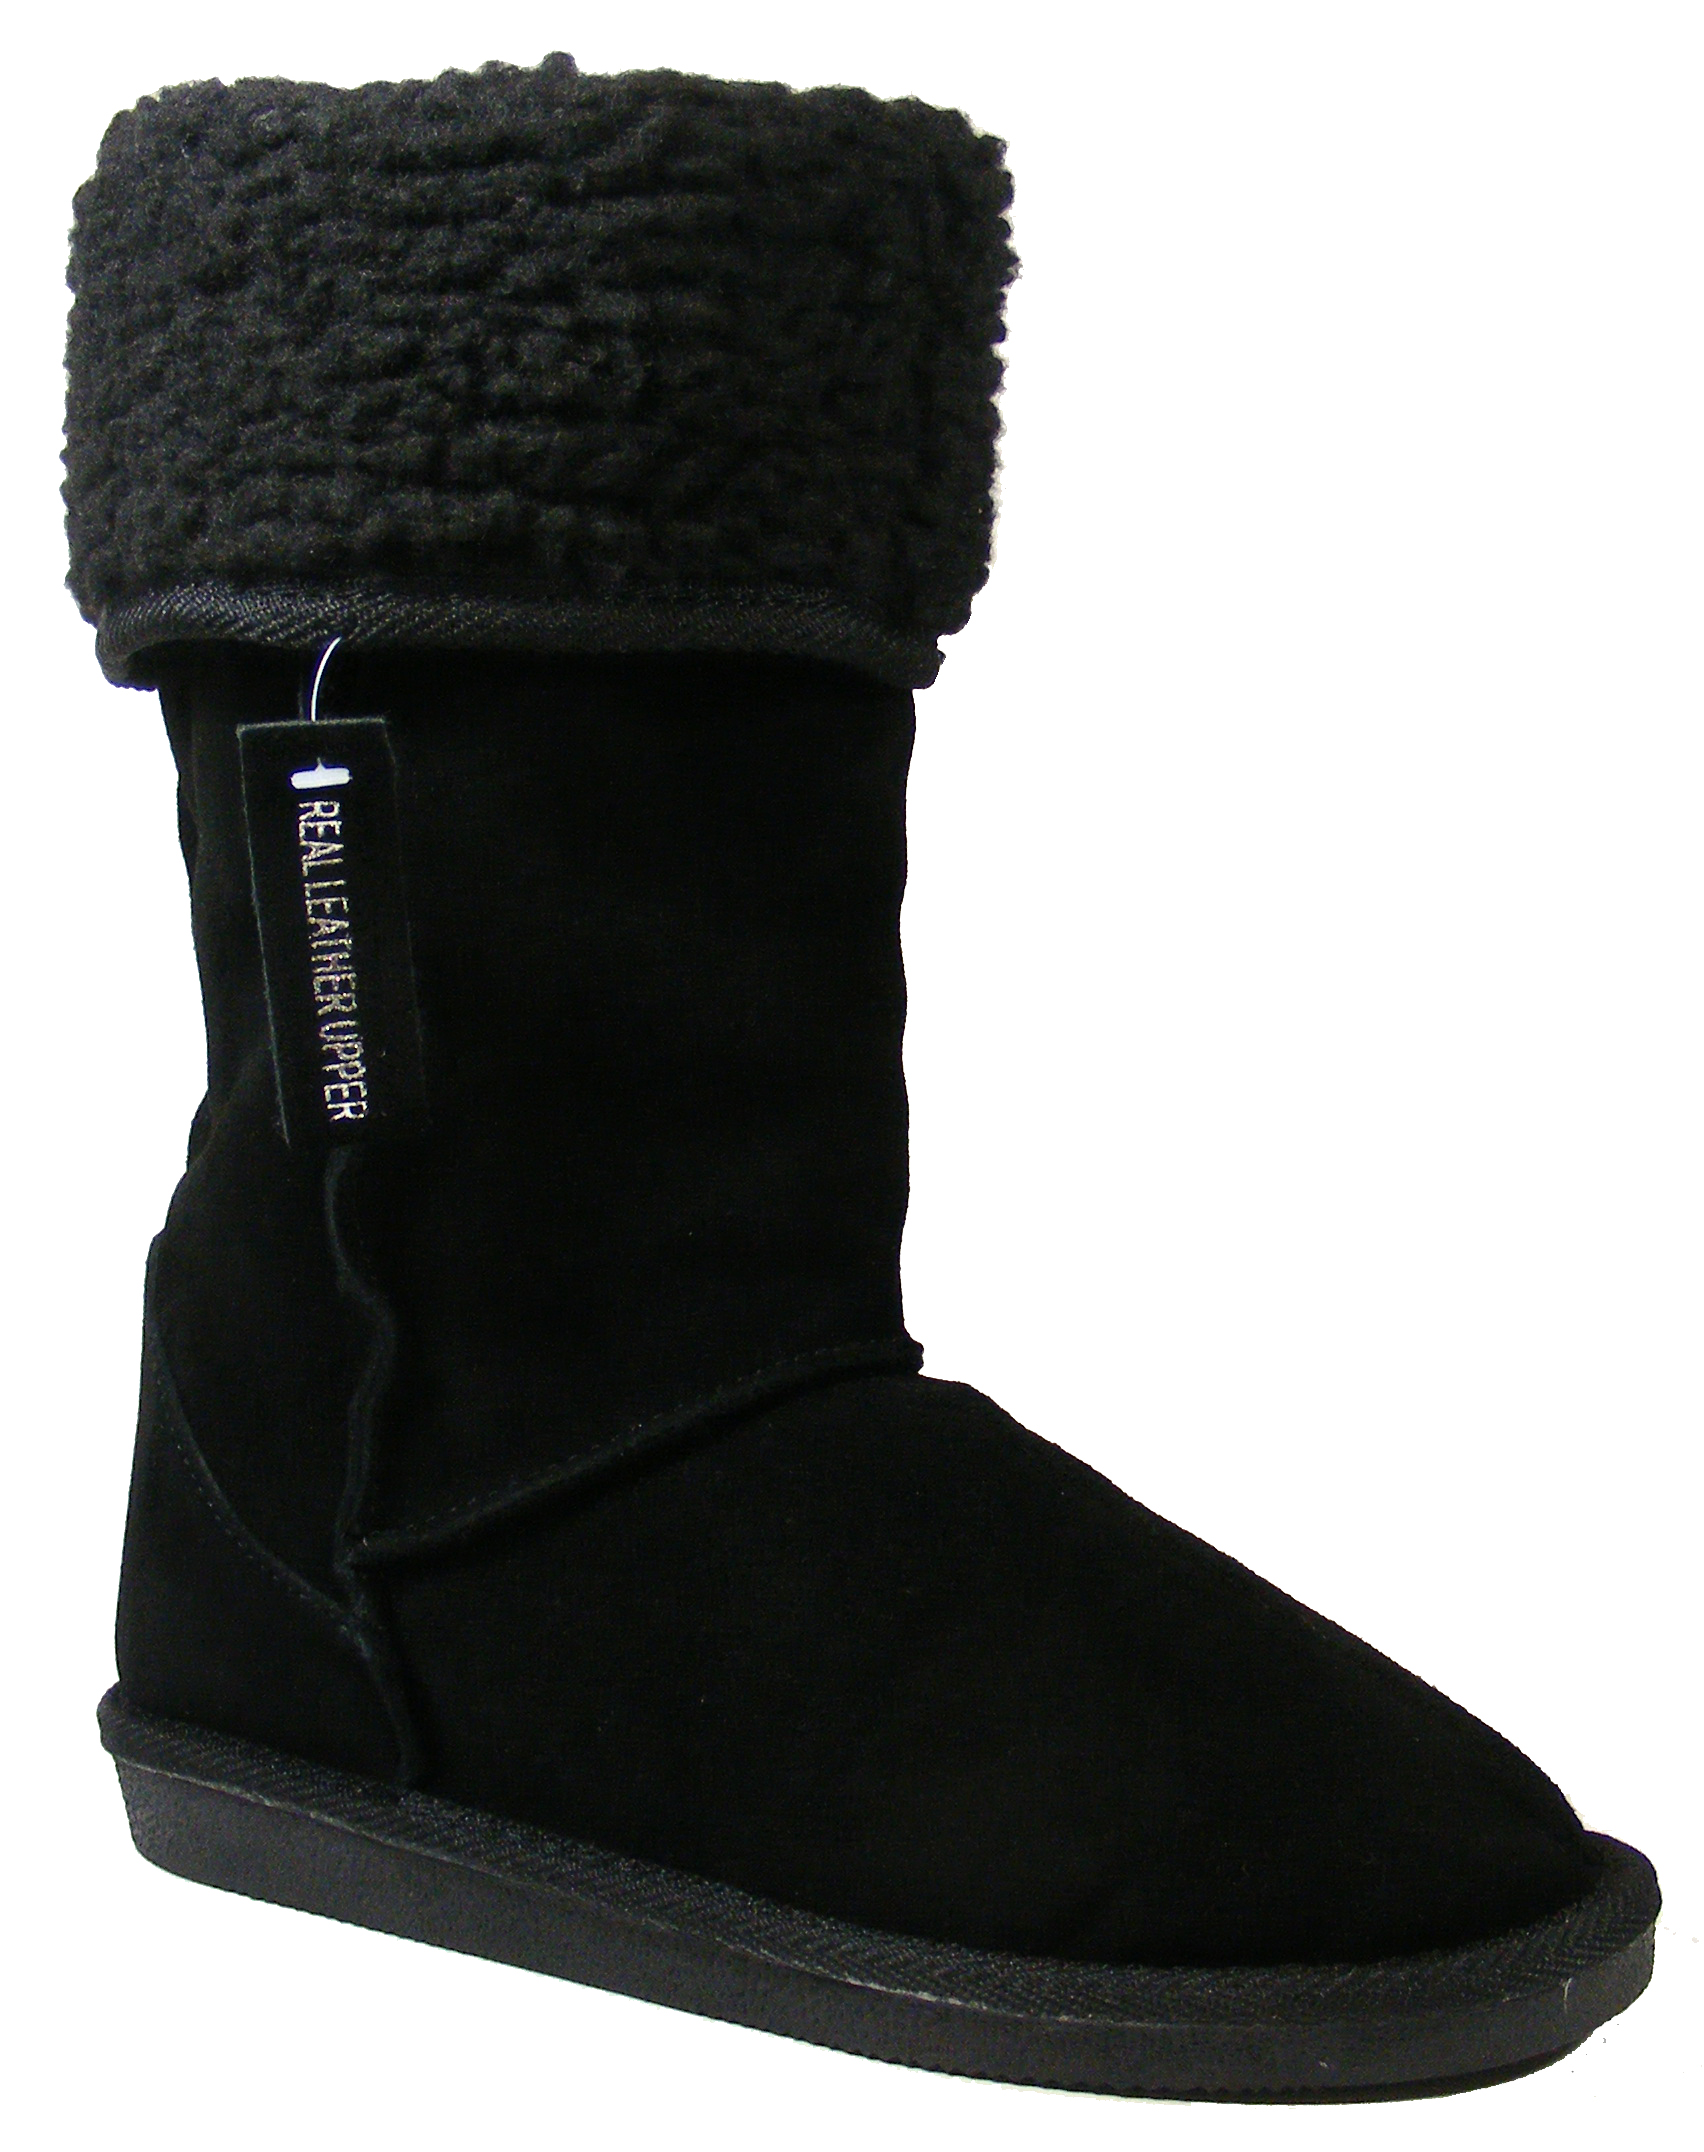 new black leather dorothy perkins boot faux fur